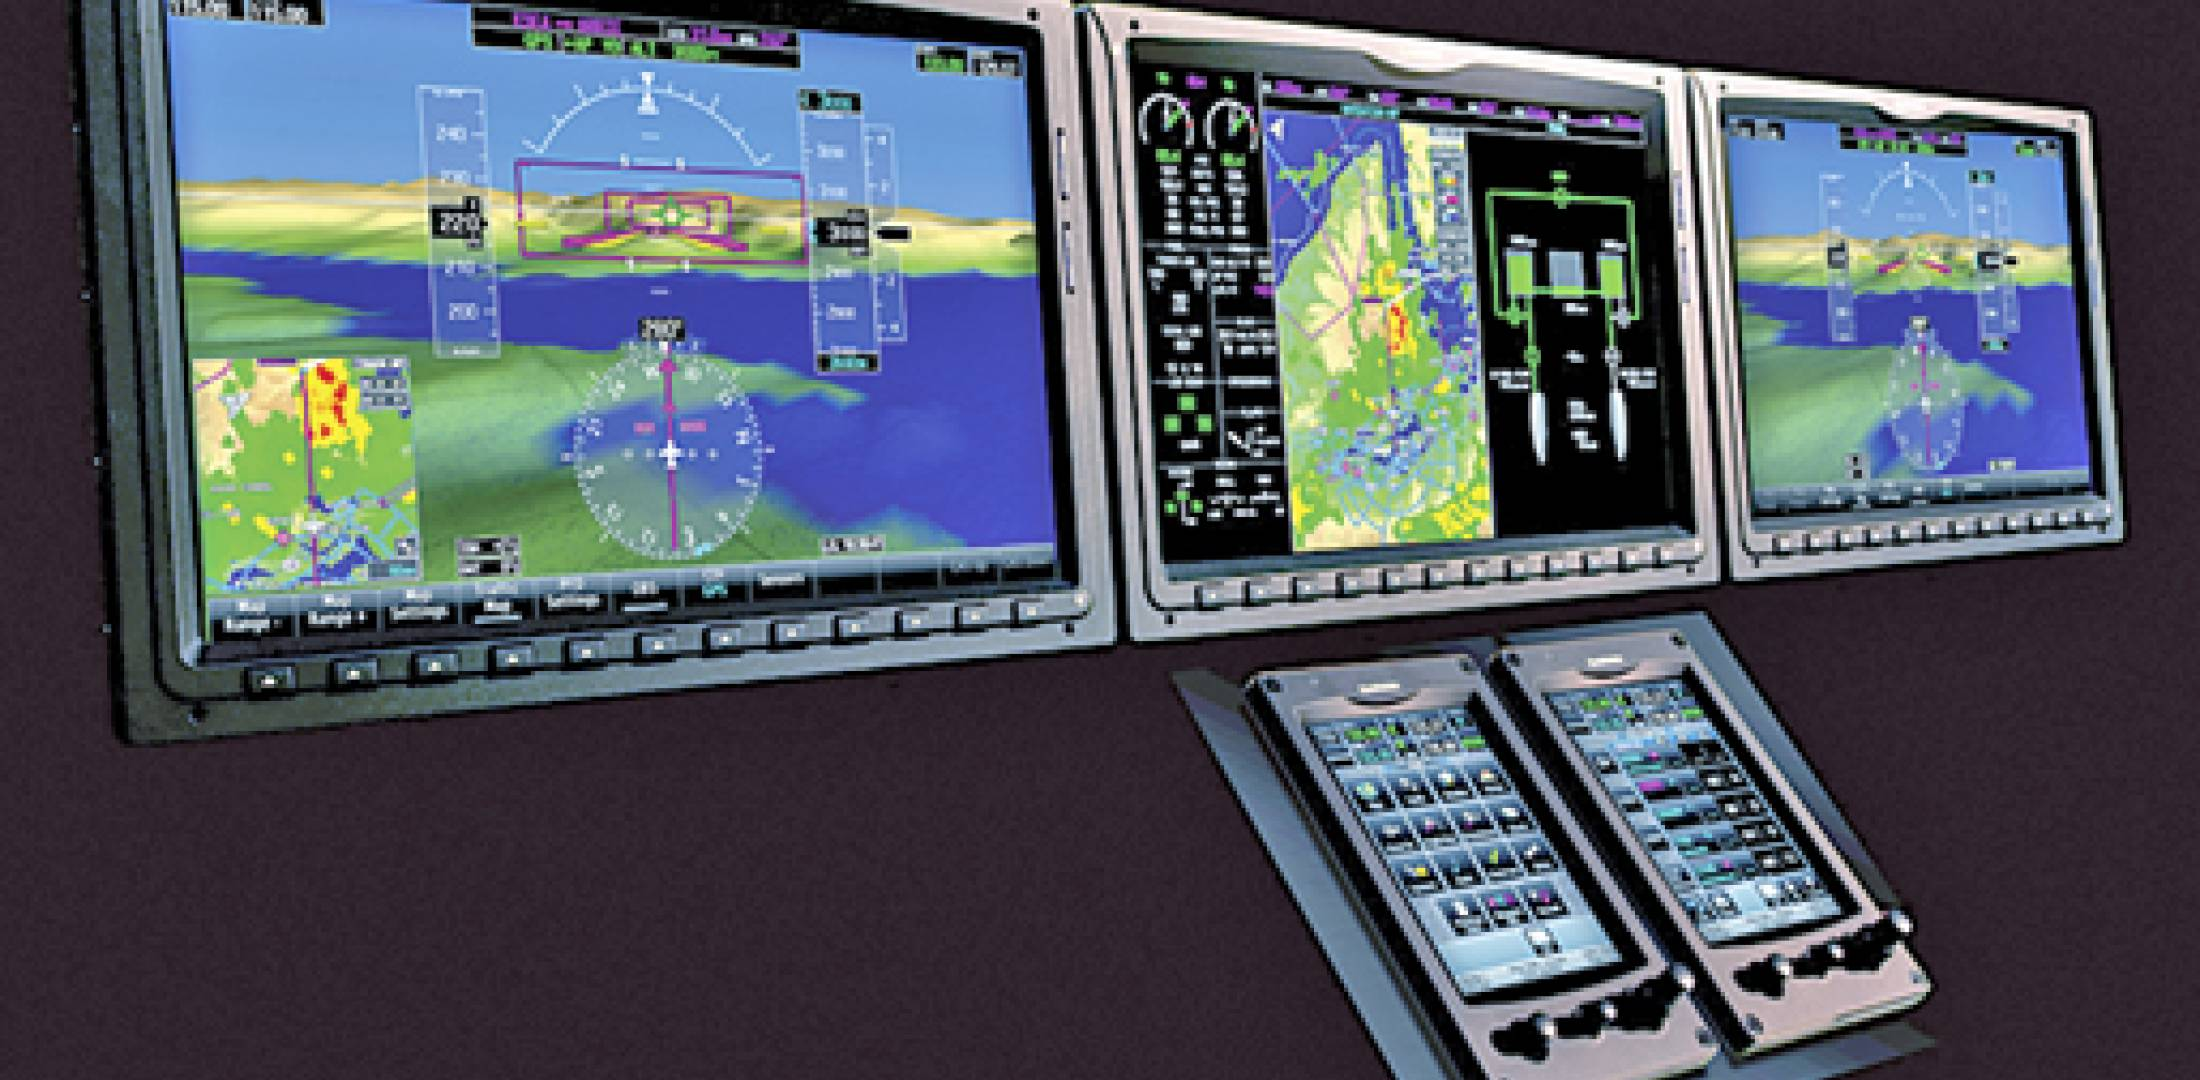 With G3000 Garmin Brings Touchscreens To Flight Deck Business Drive 51 Gps Mobil Touchscreen Caused The Biggest Stir At Last Months Nbaa Convention By Unveiling Integrated Avionics System A Follow On G1000 Cockpit That Will